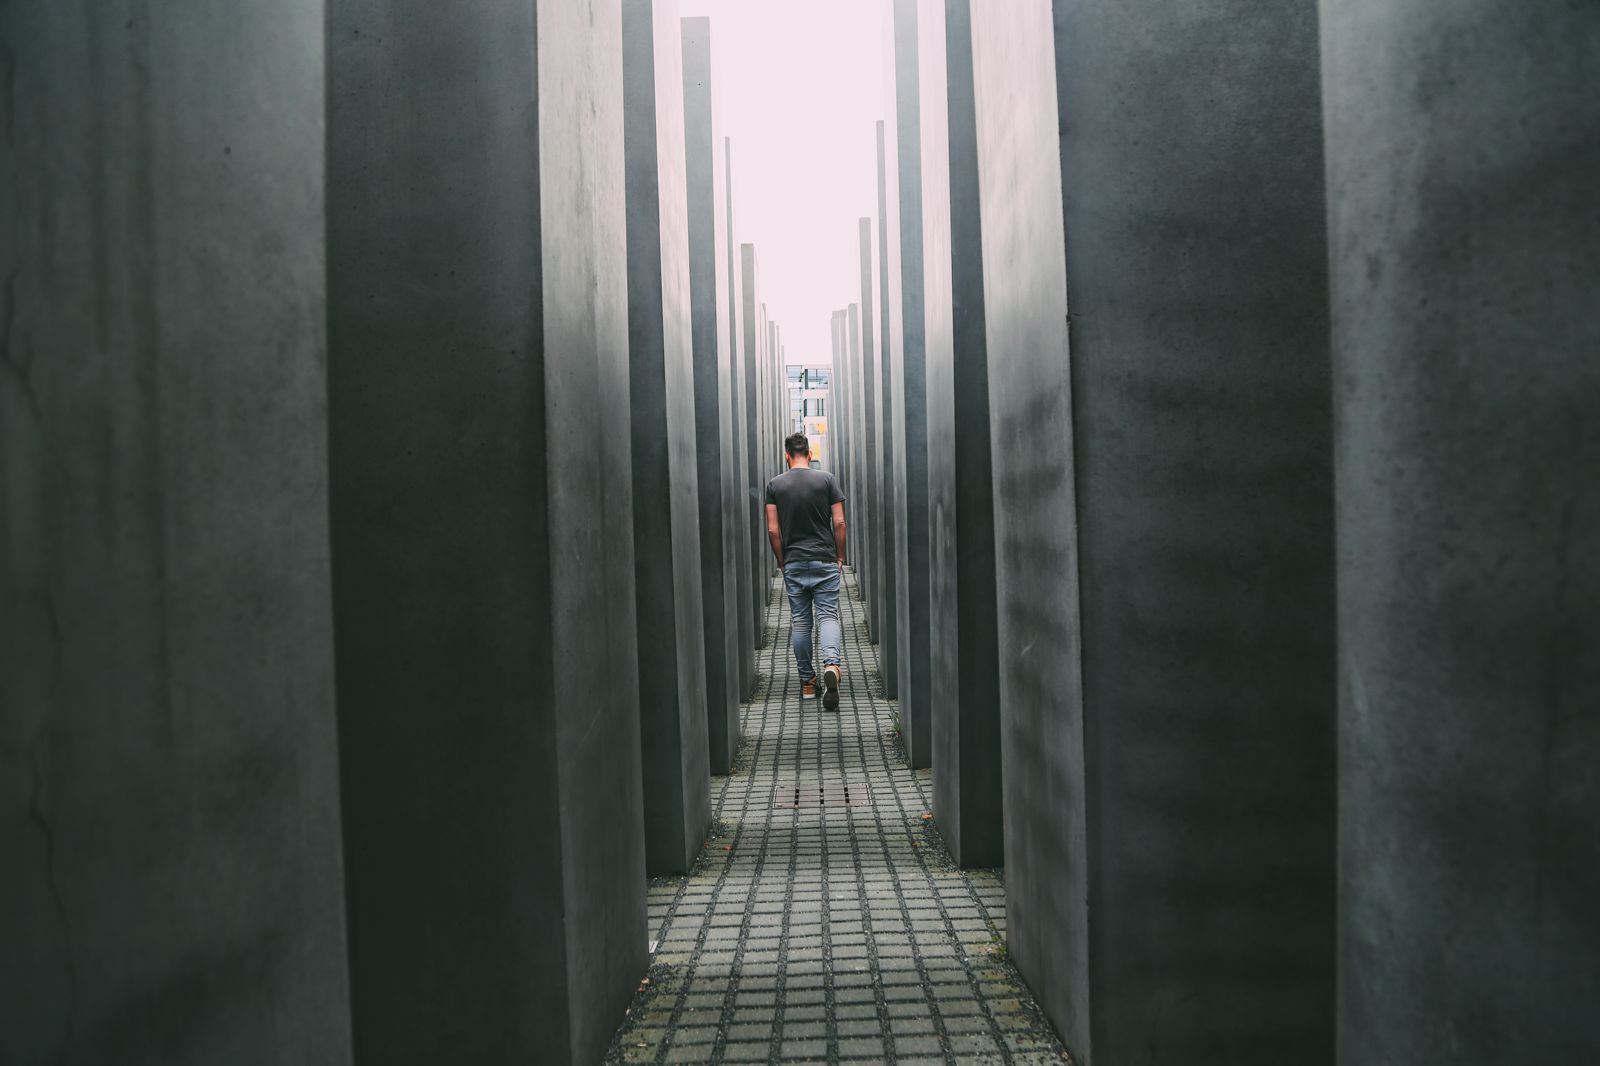 A Memoir To The Fallen - The Holocaust Memorial Also known as the Memorial to the Murdered Jews of Europe (7)